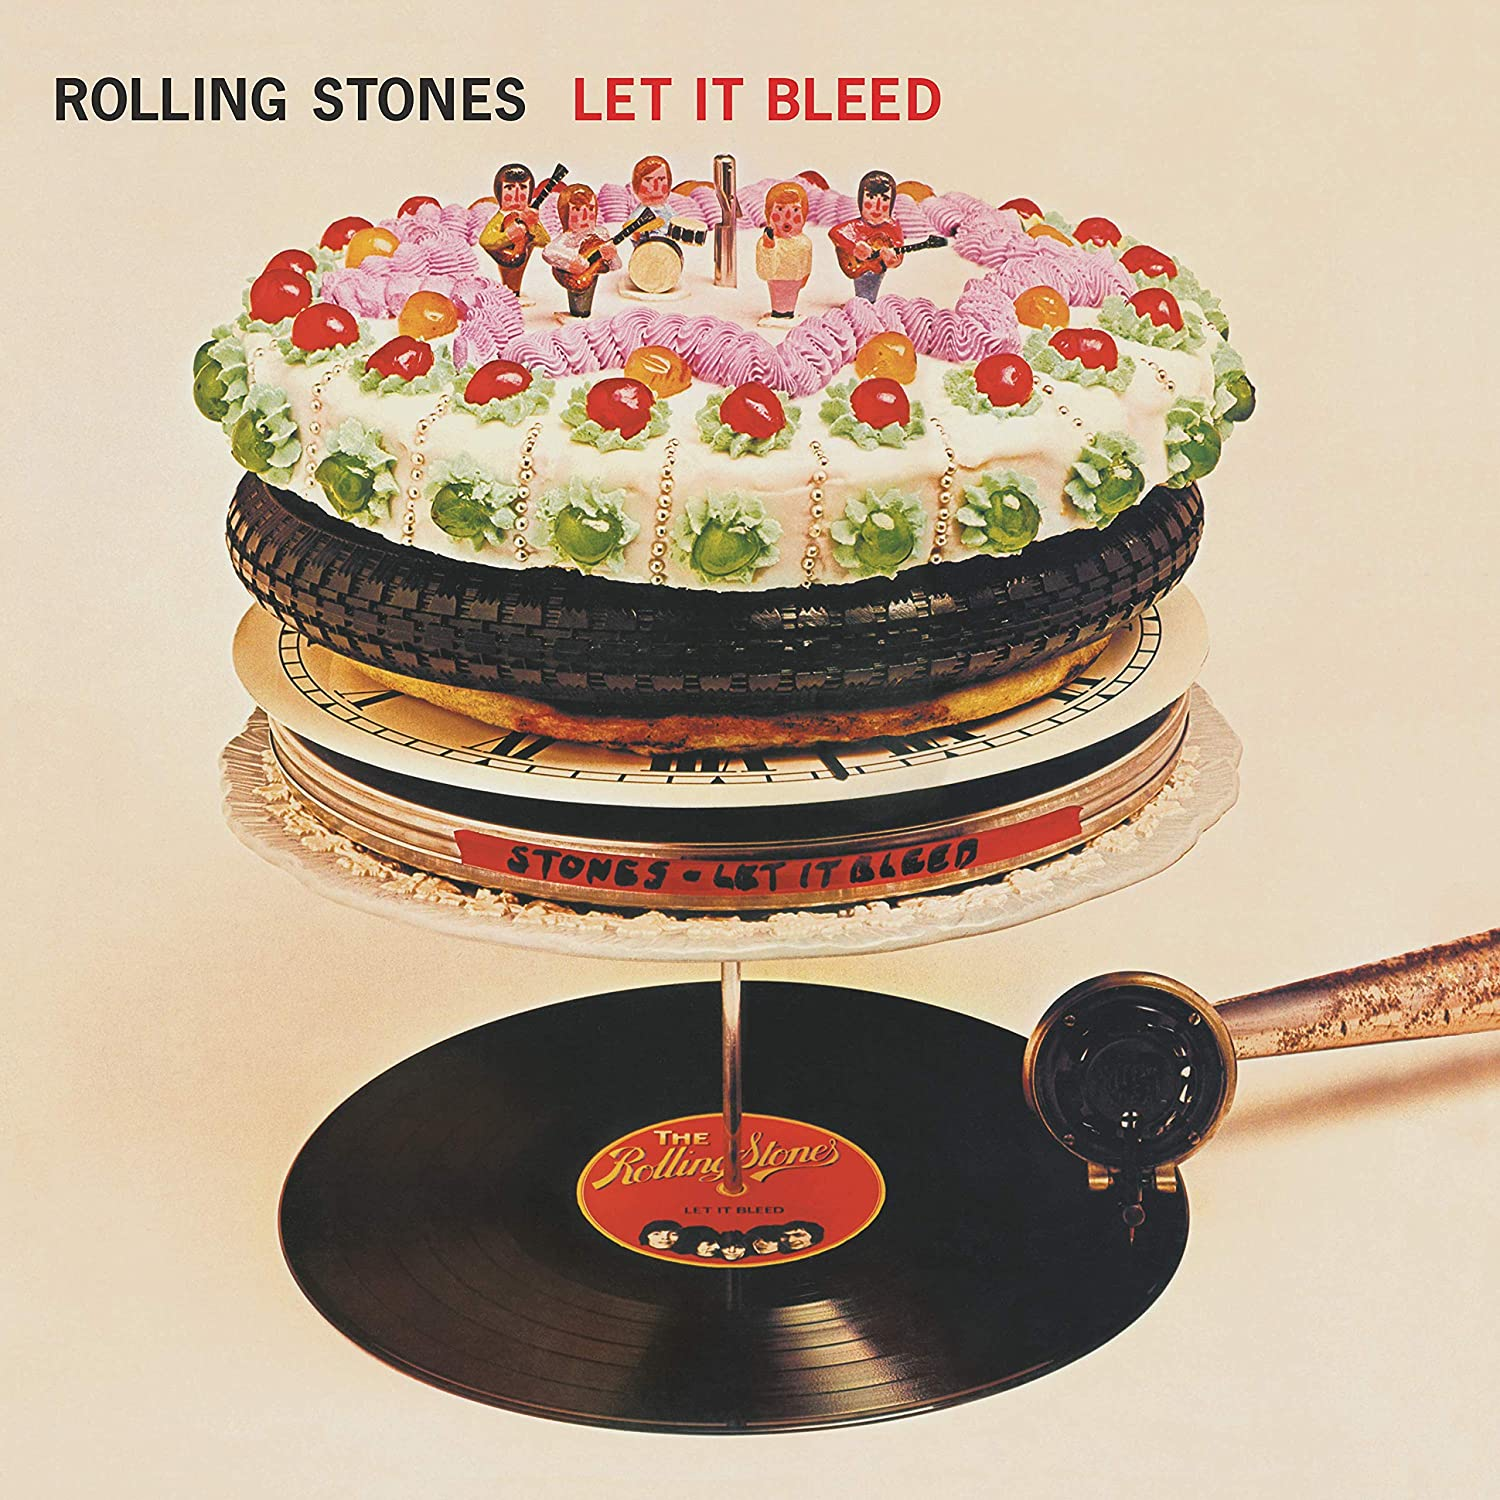 Full Albums: The Rolling Stones' 'Let It Bleed'